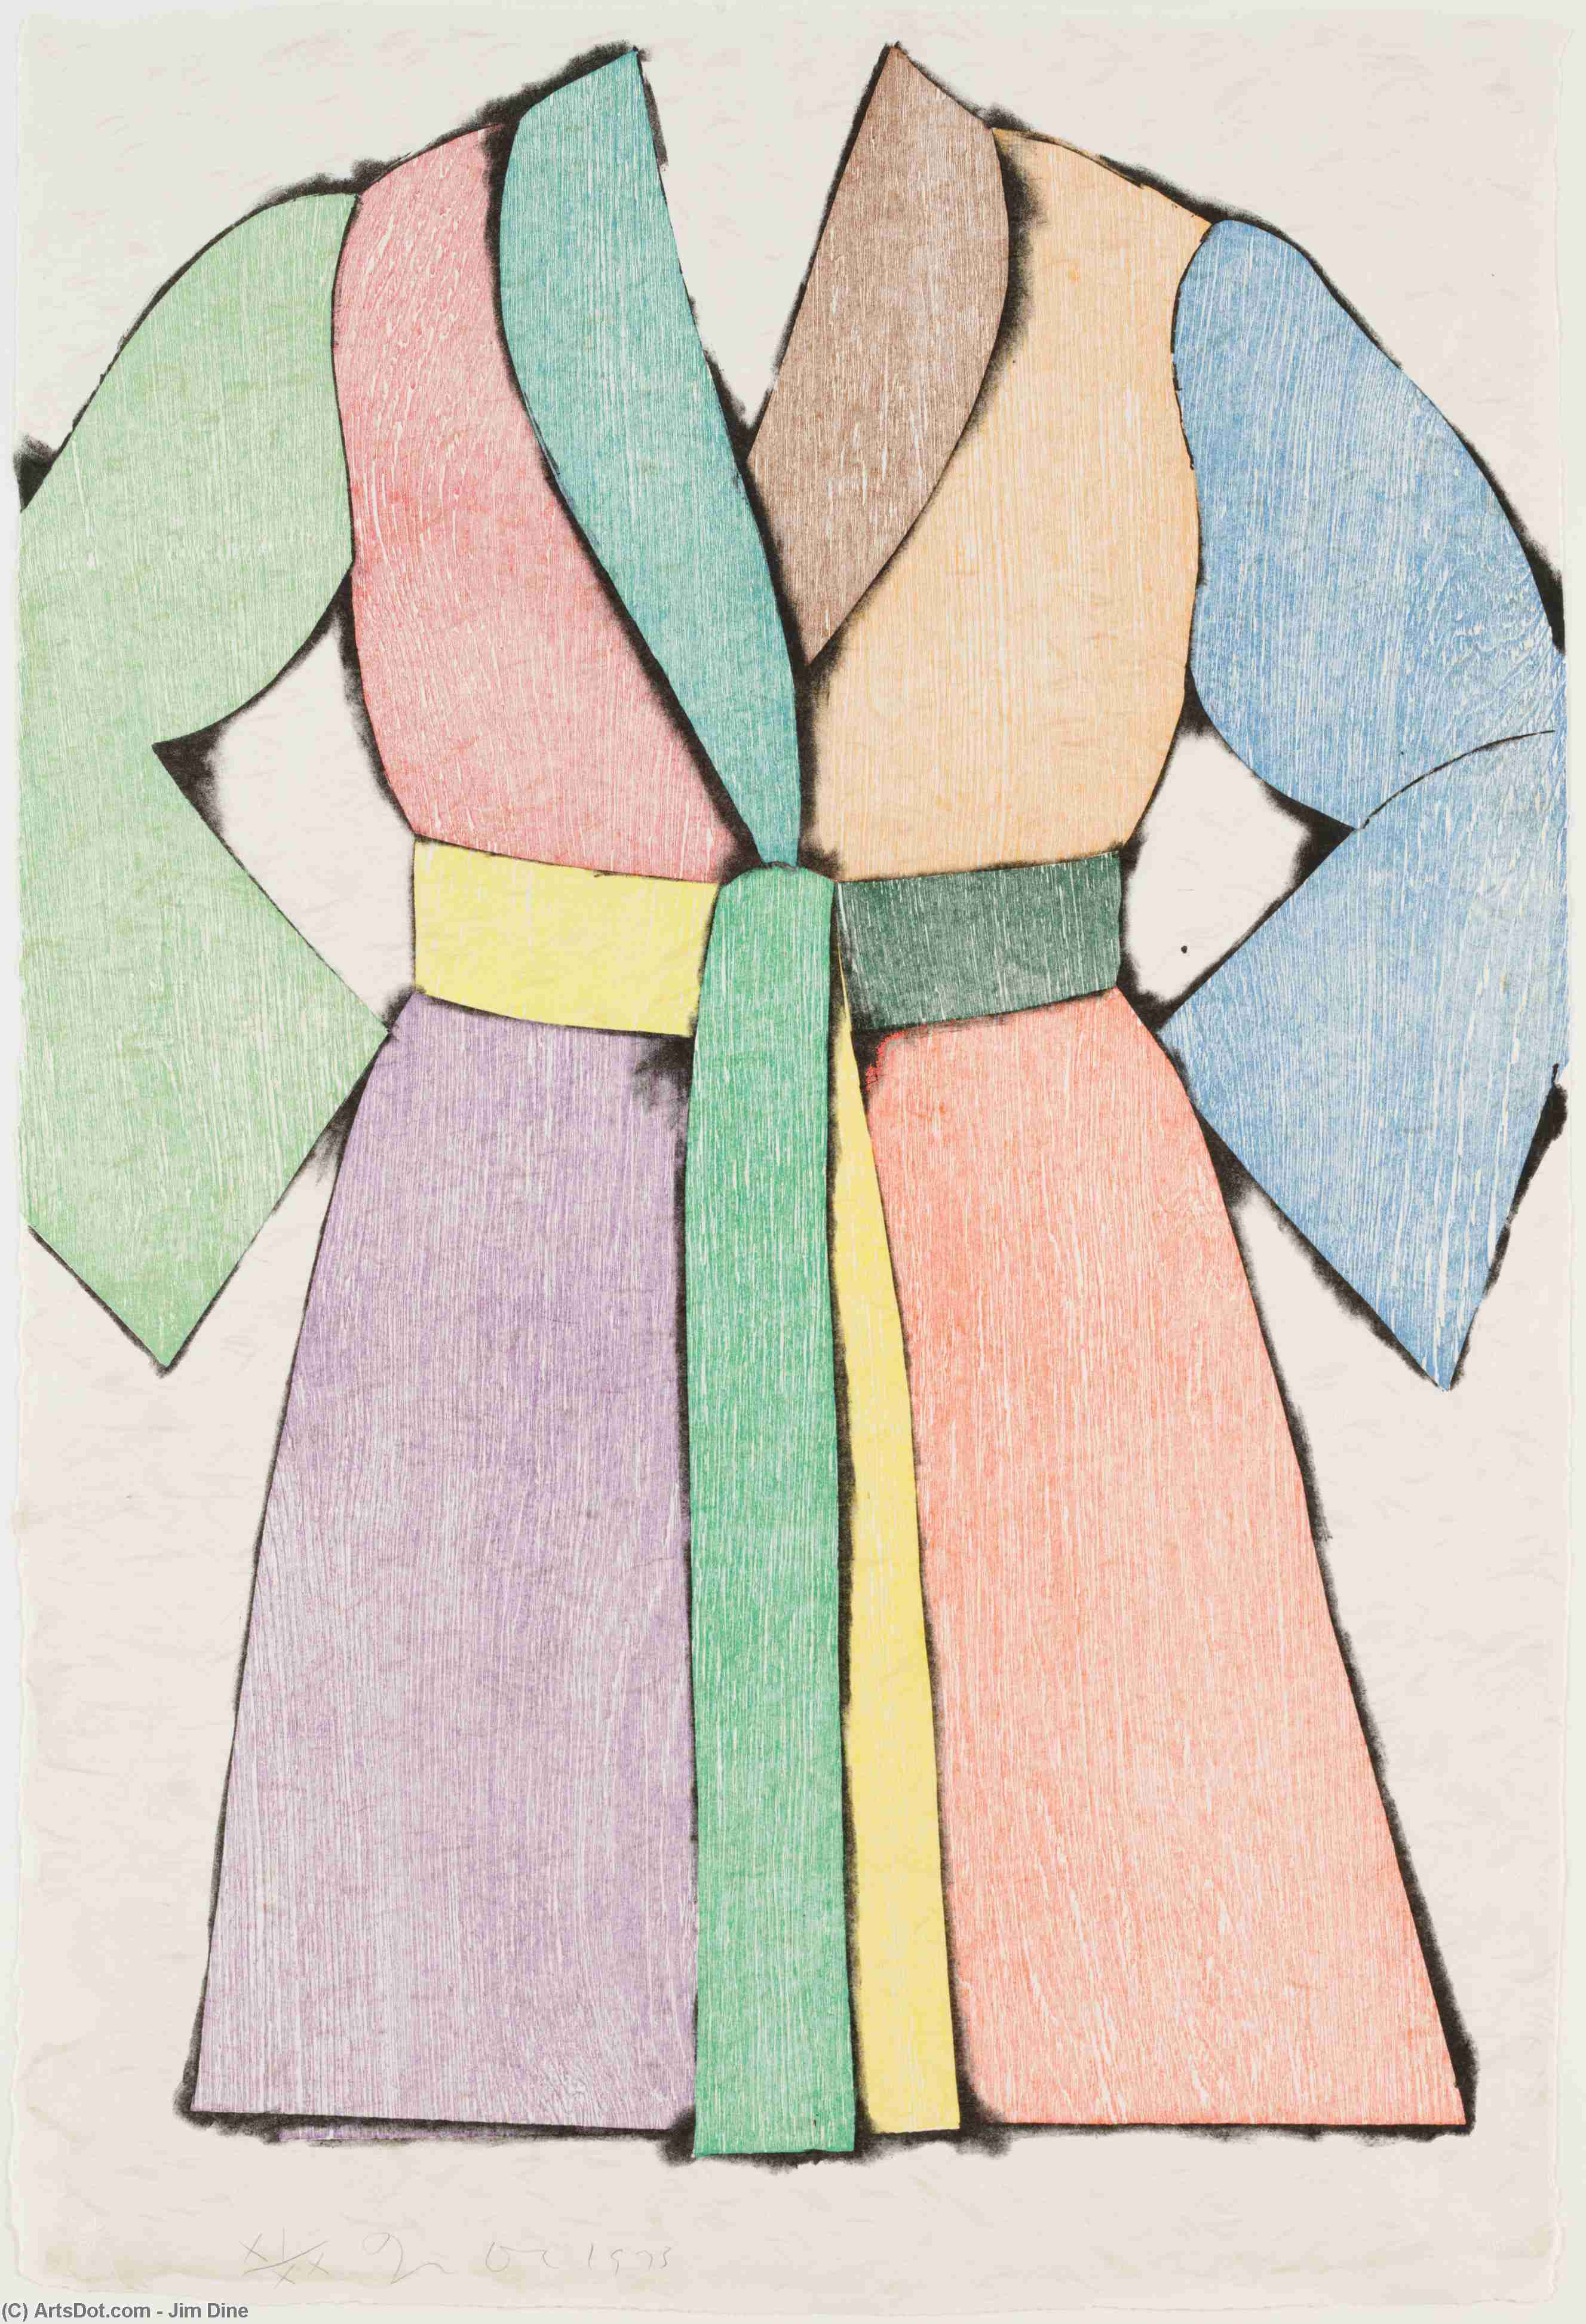 The woodcut bathrobe by Jim Dine (1935-1935, United States) | Art Reproductions Jim Dine | ArtsDot.com